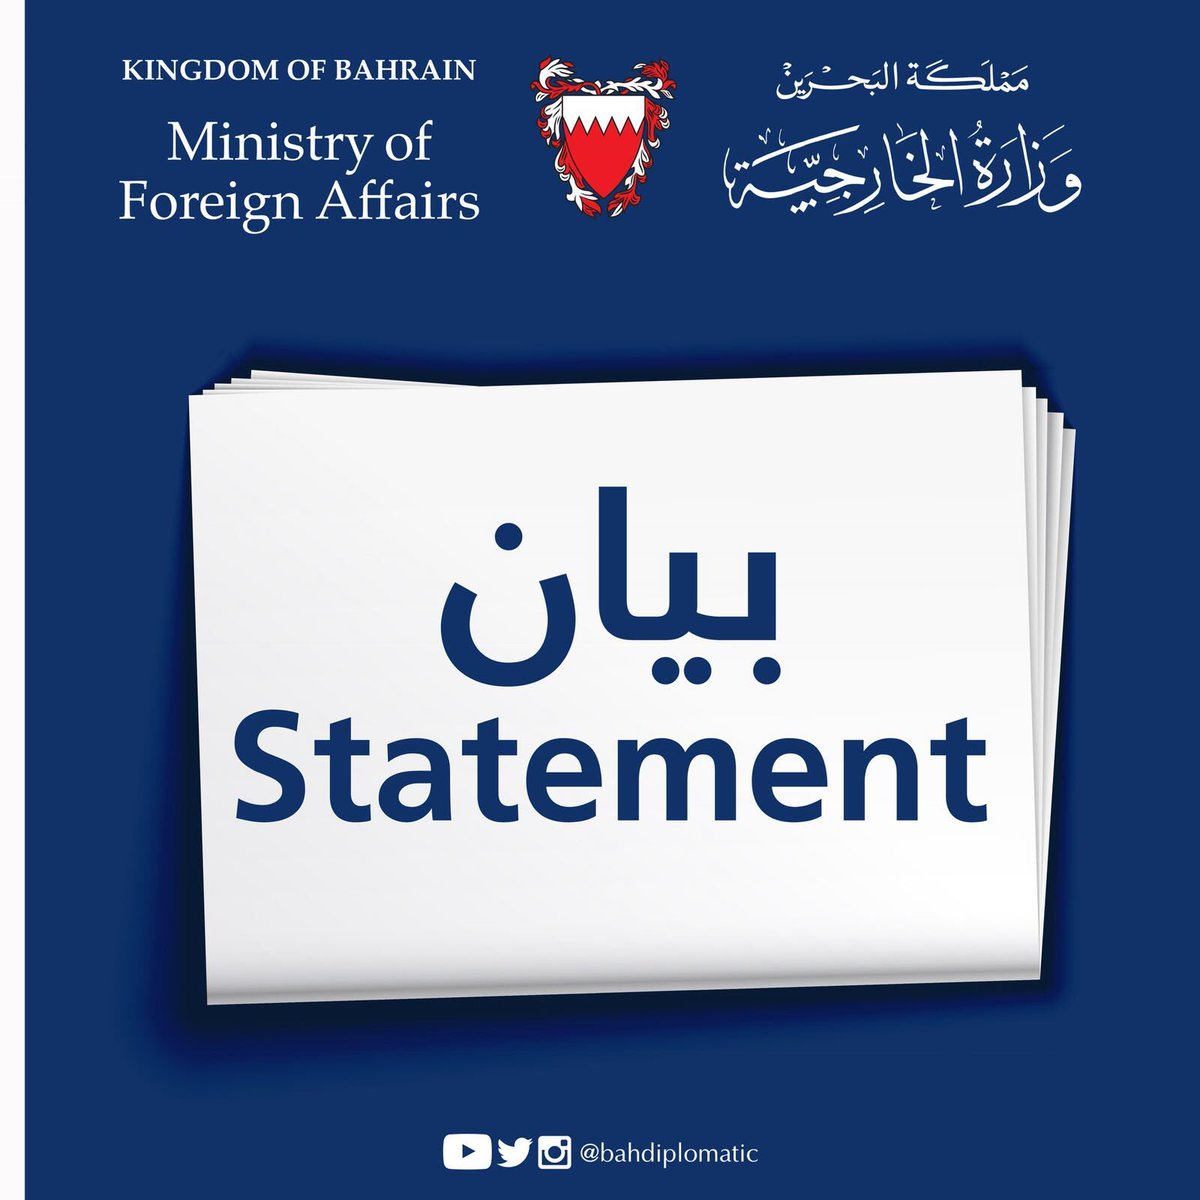 Ministry of Foreign Affairs of Kingdom of #Bahrain strongly condemns bombing targeting election rally of President of Republic of #Zimbabwe https://t.co/ZCI1k9yppU